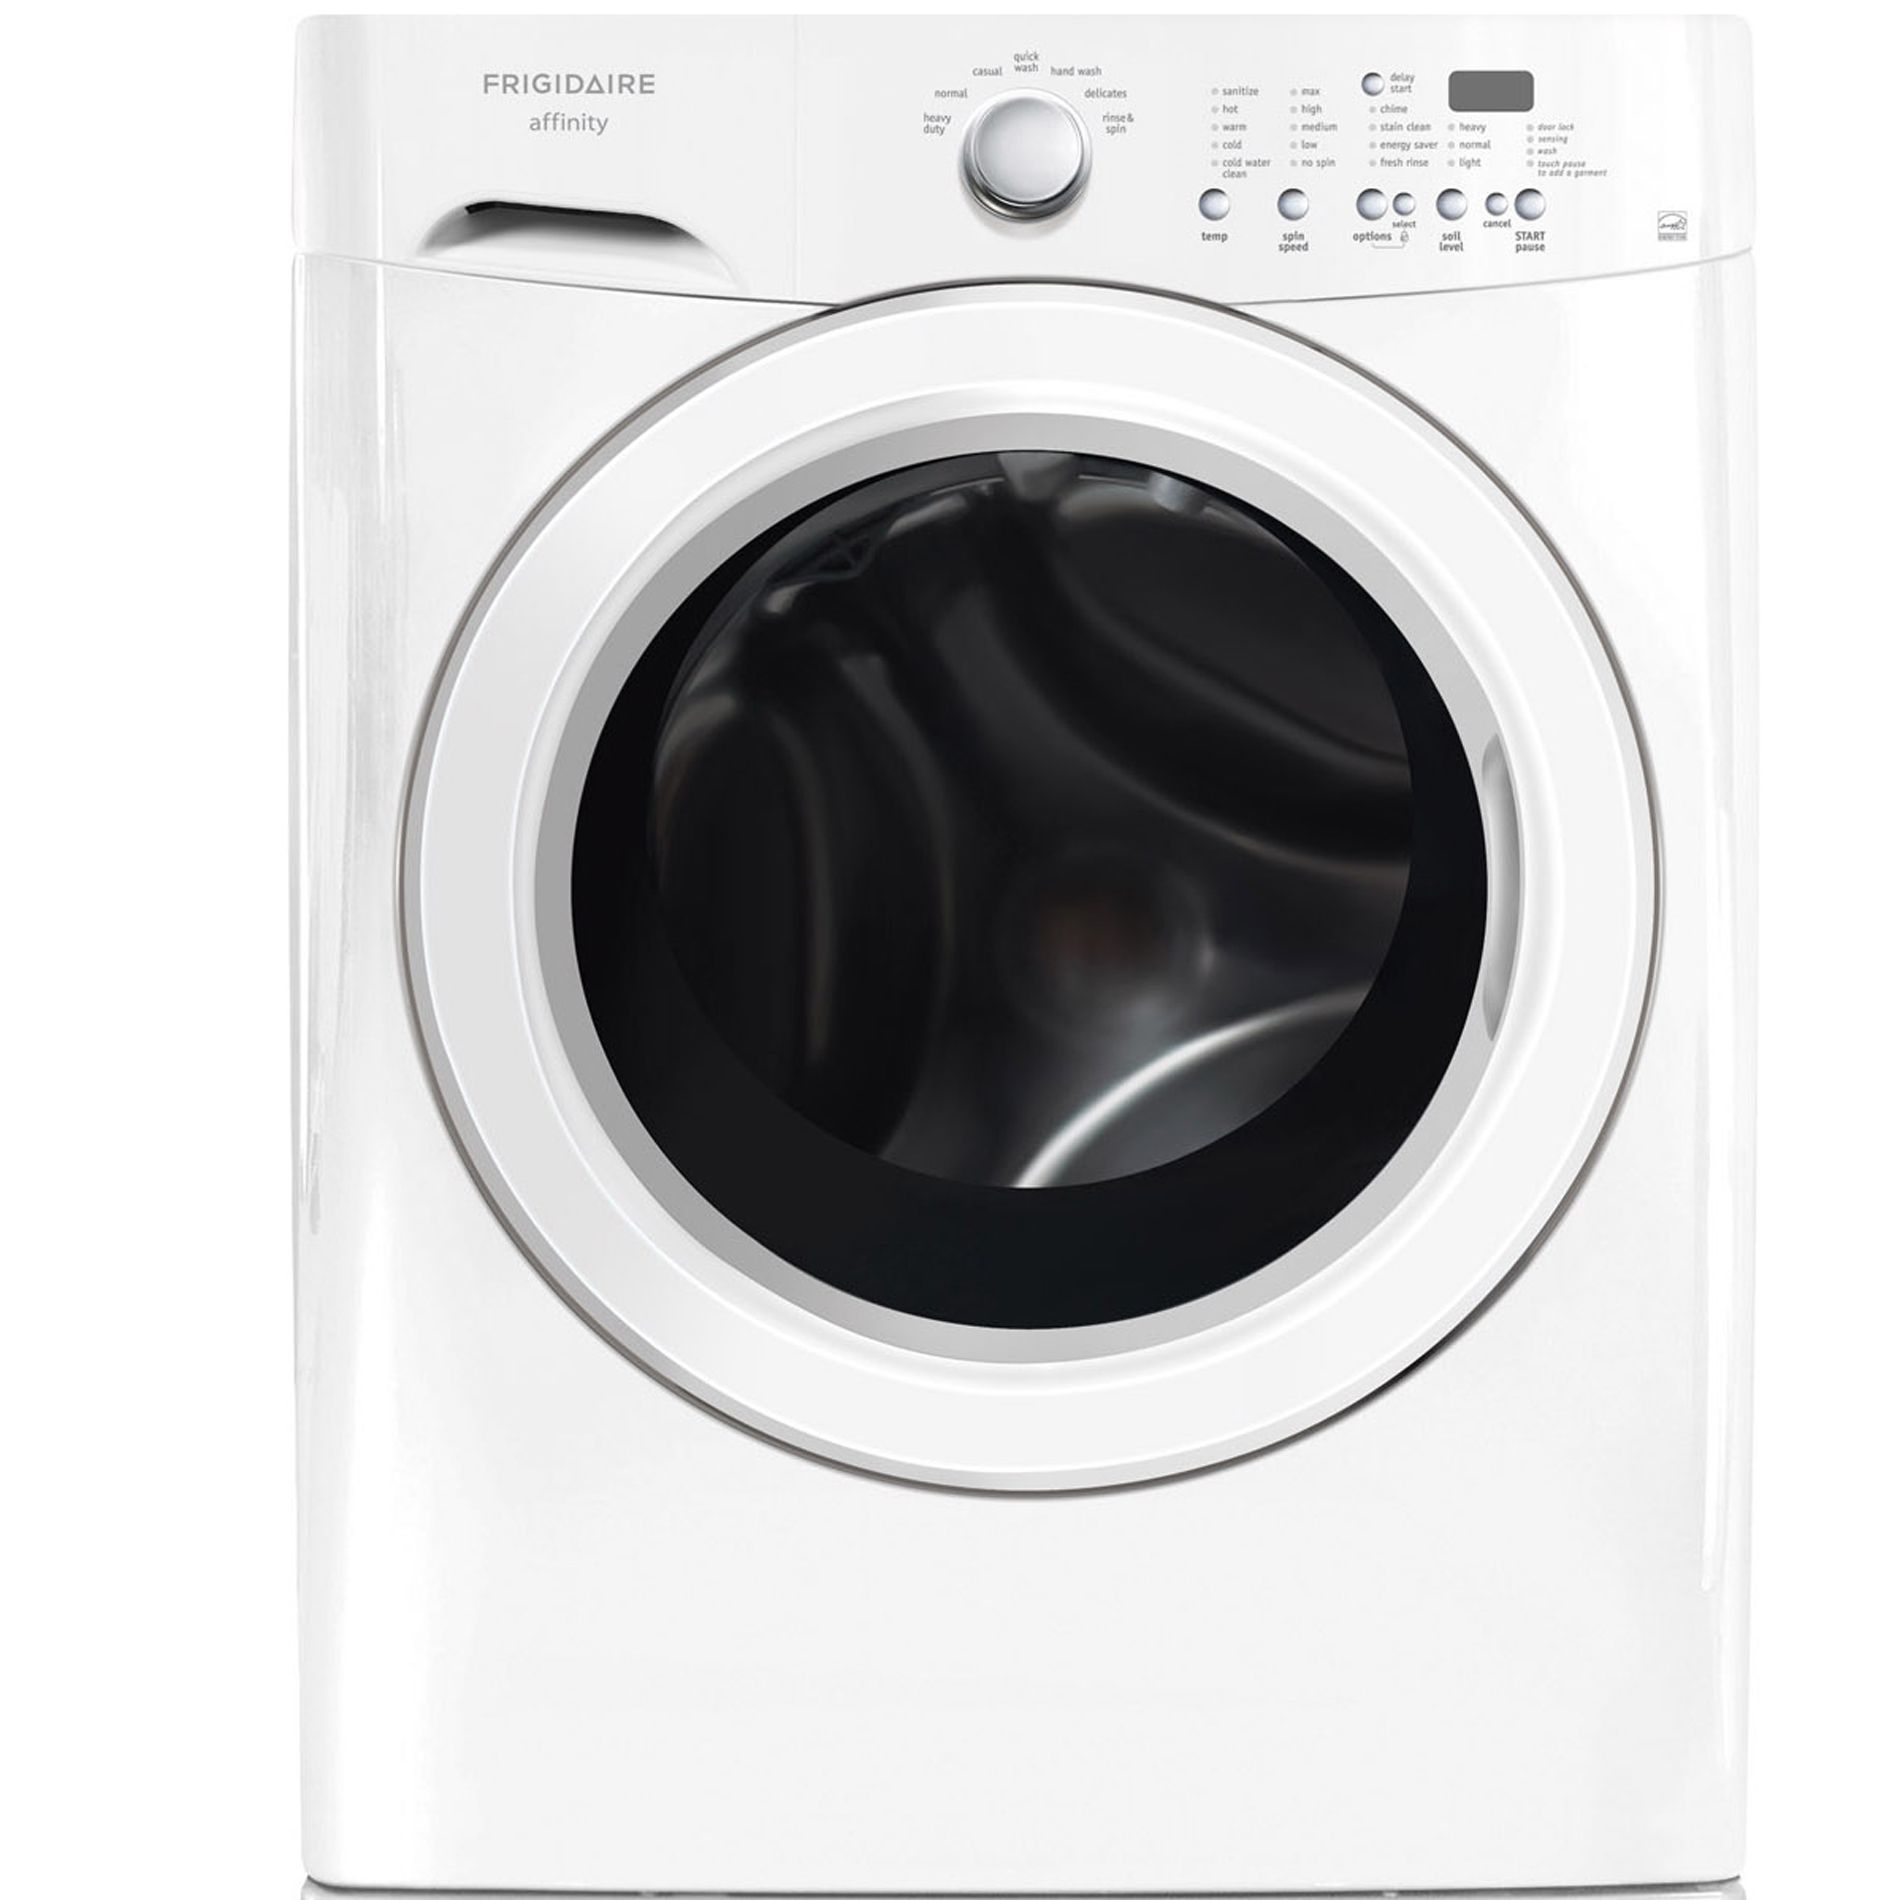 3.7 cu. ft Front-Load Washer w/1000-Watt